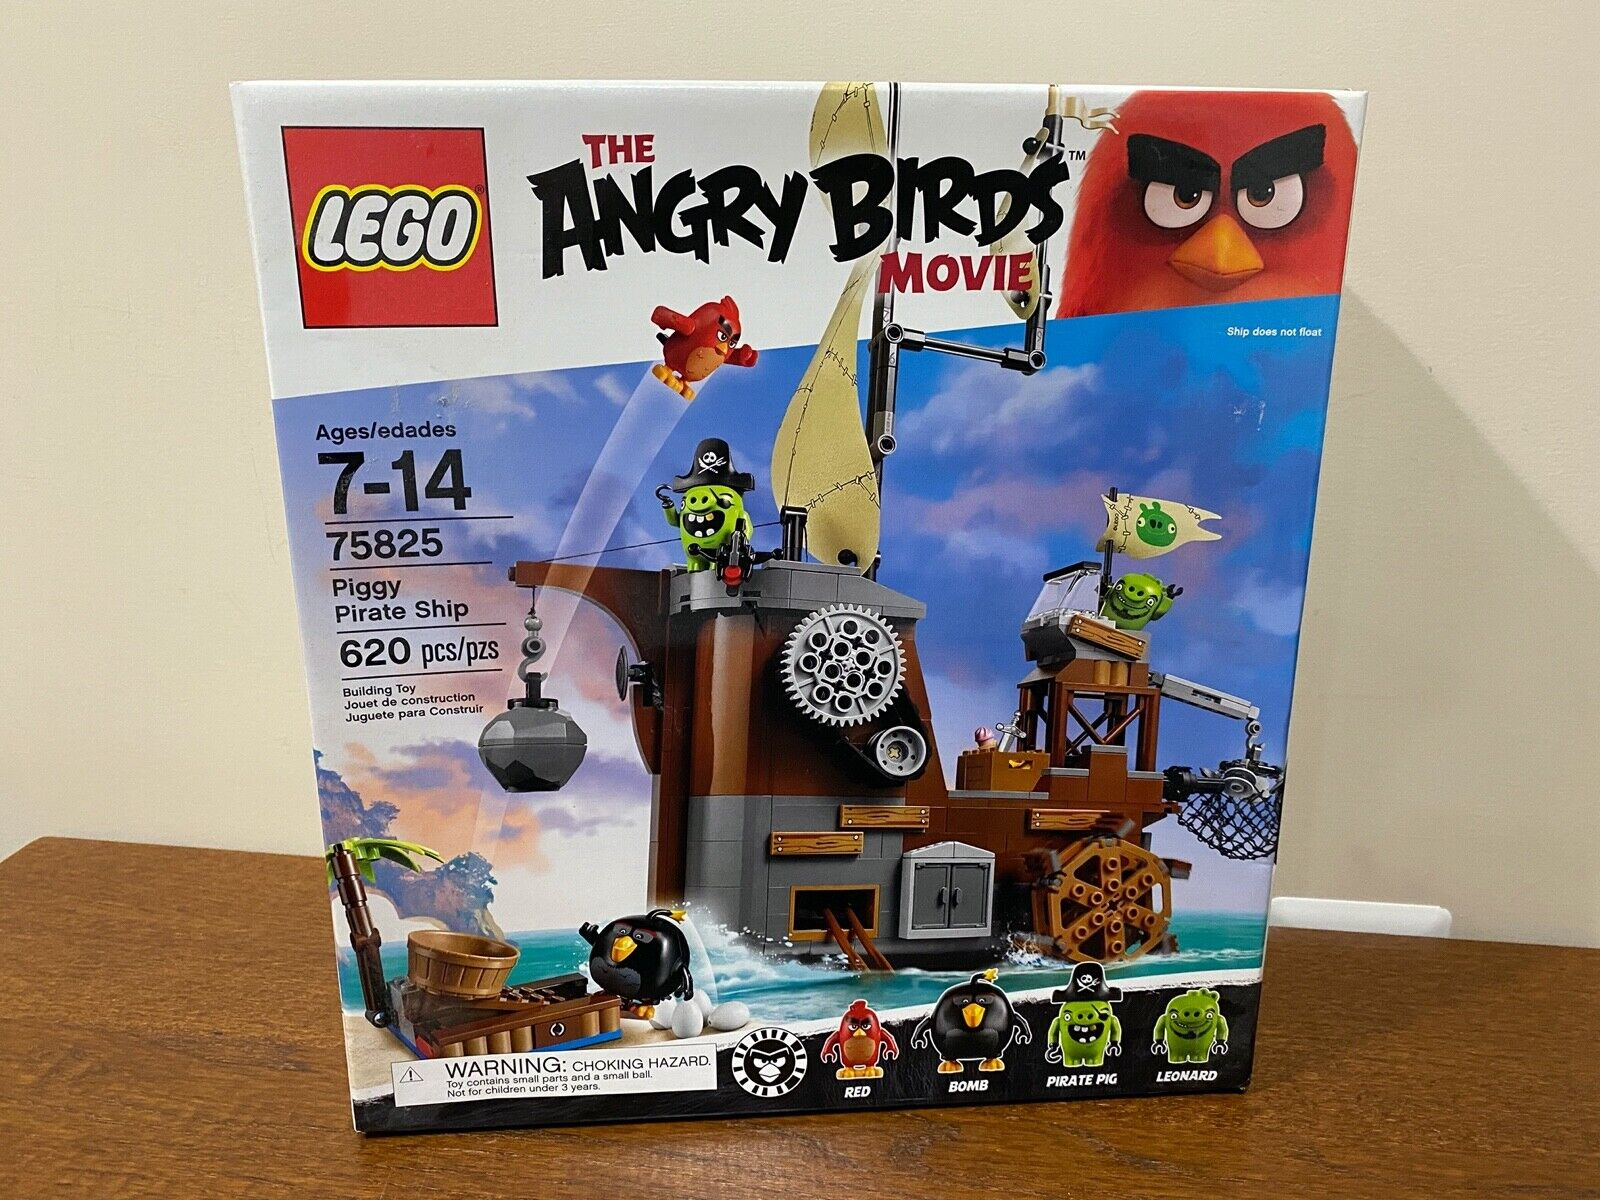 NEW in factory sealed box Piggy Pirate Ship set 75825 LEGO Angry Birds Movie